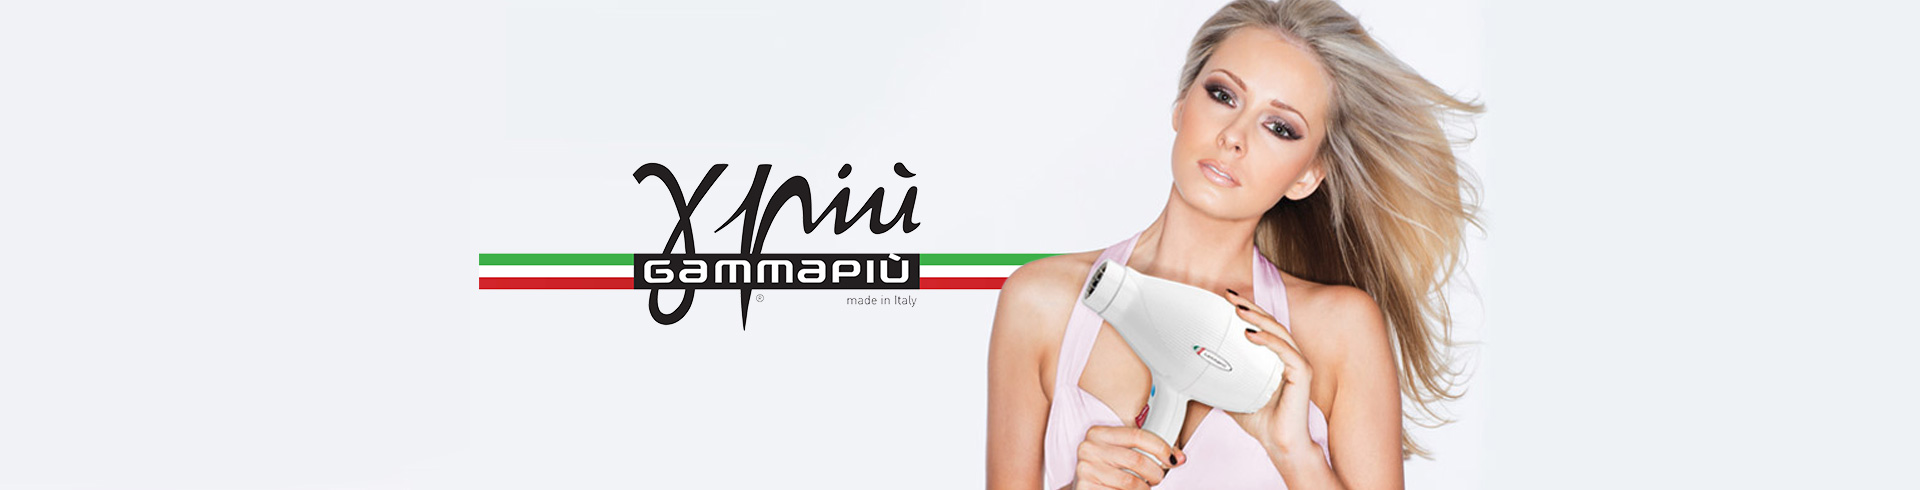 Gammapiu πιστολάκια μαλλιών Le Tif Hair and Nails